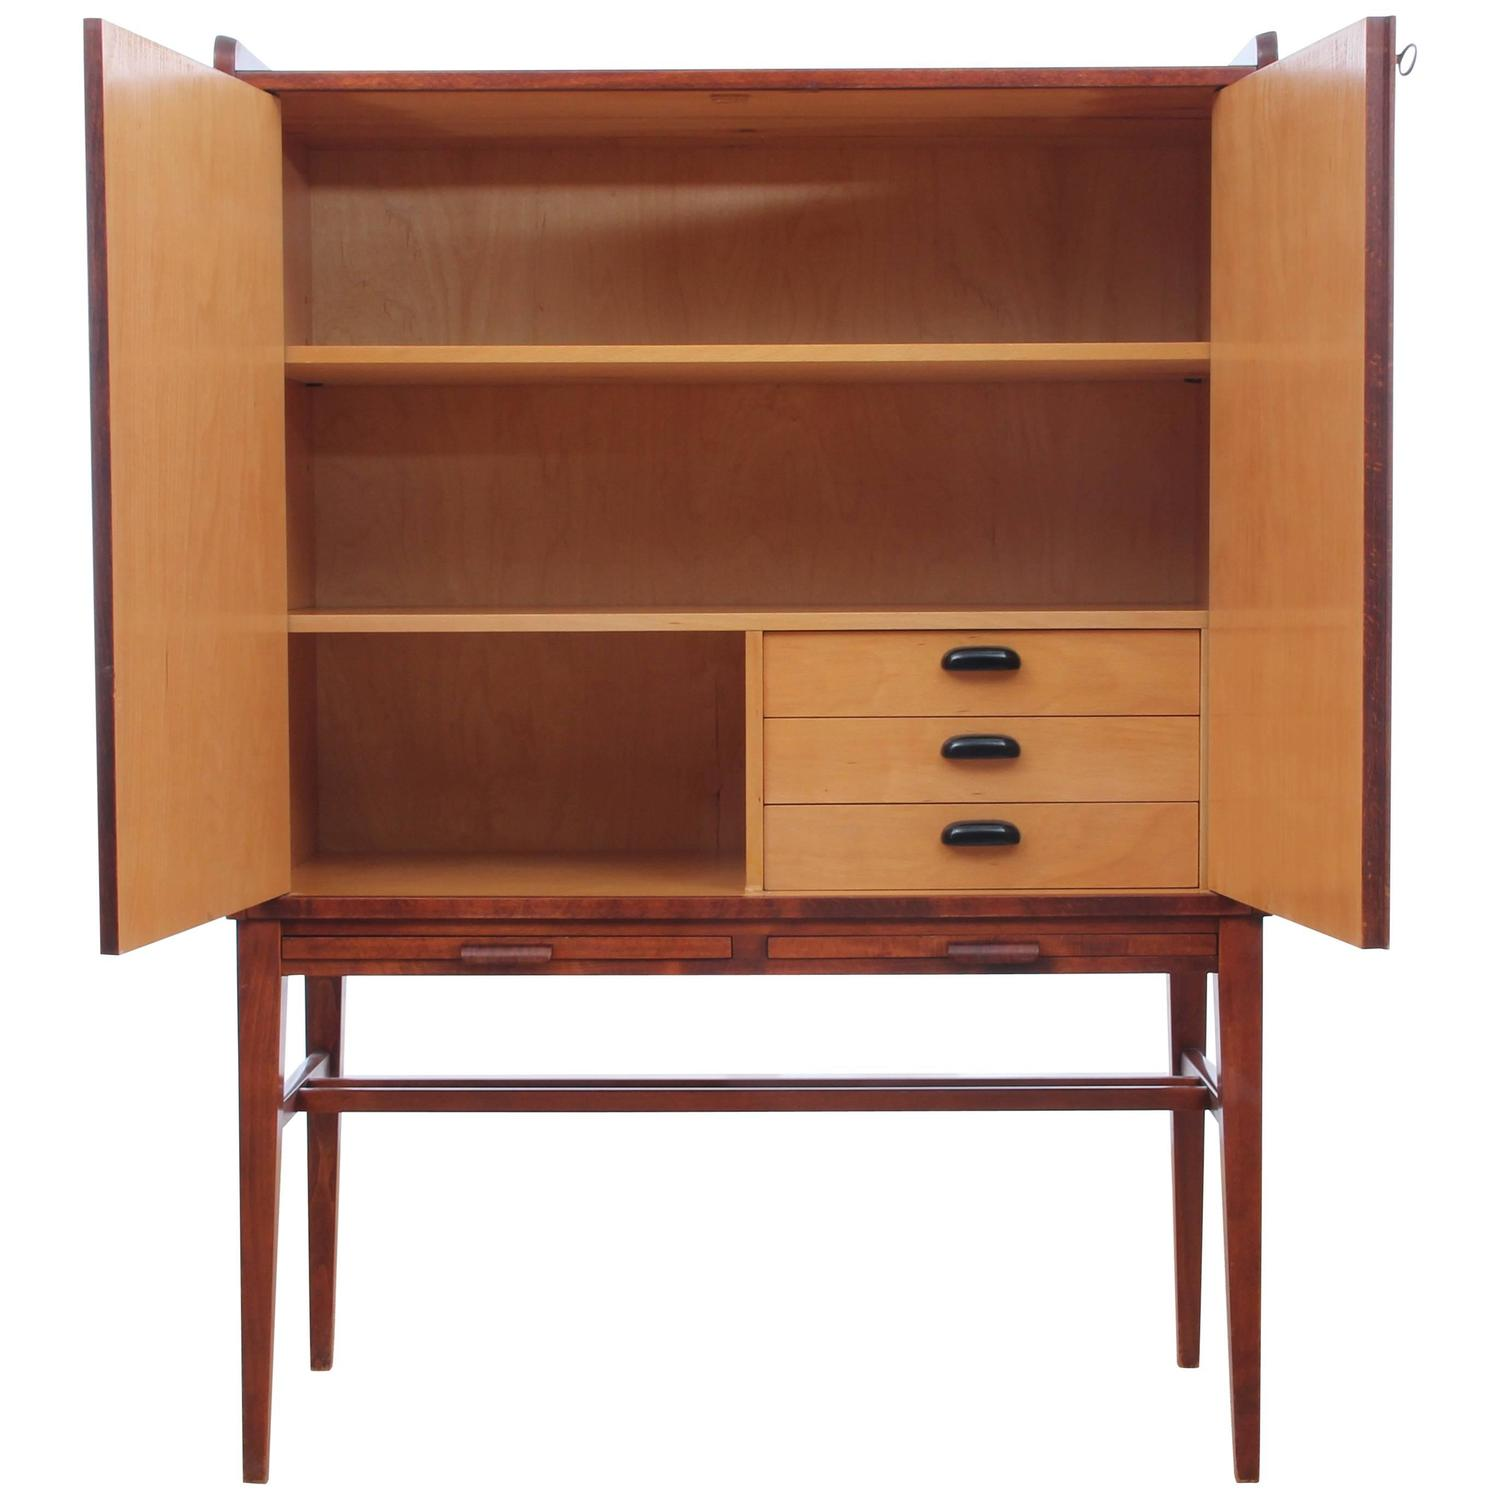 Marvelous Mid Century Modern Scandinavian Cabinet In Rosewood At 1Stdibs Pabps2019 Chair Design Images Pabps2019Com